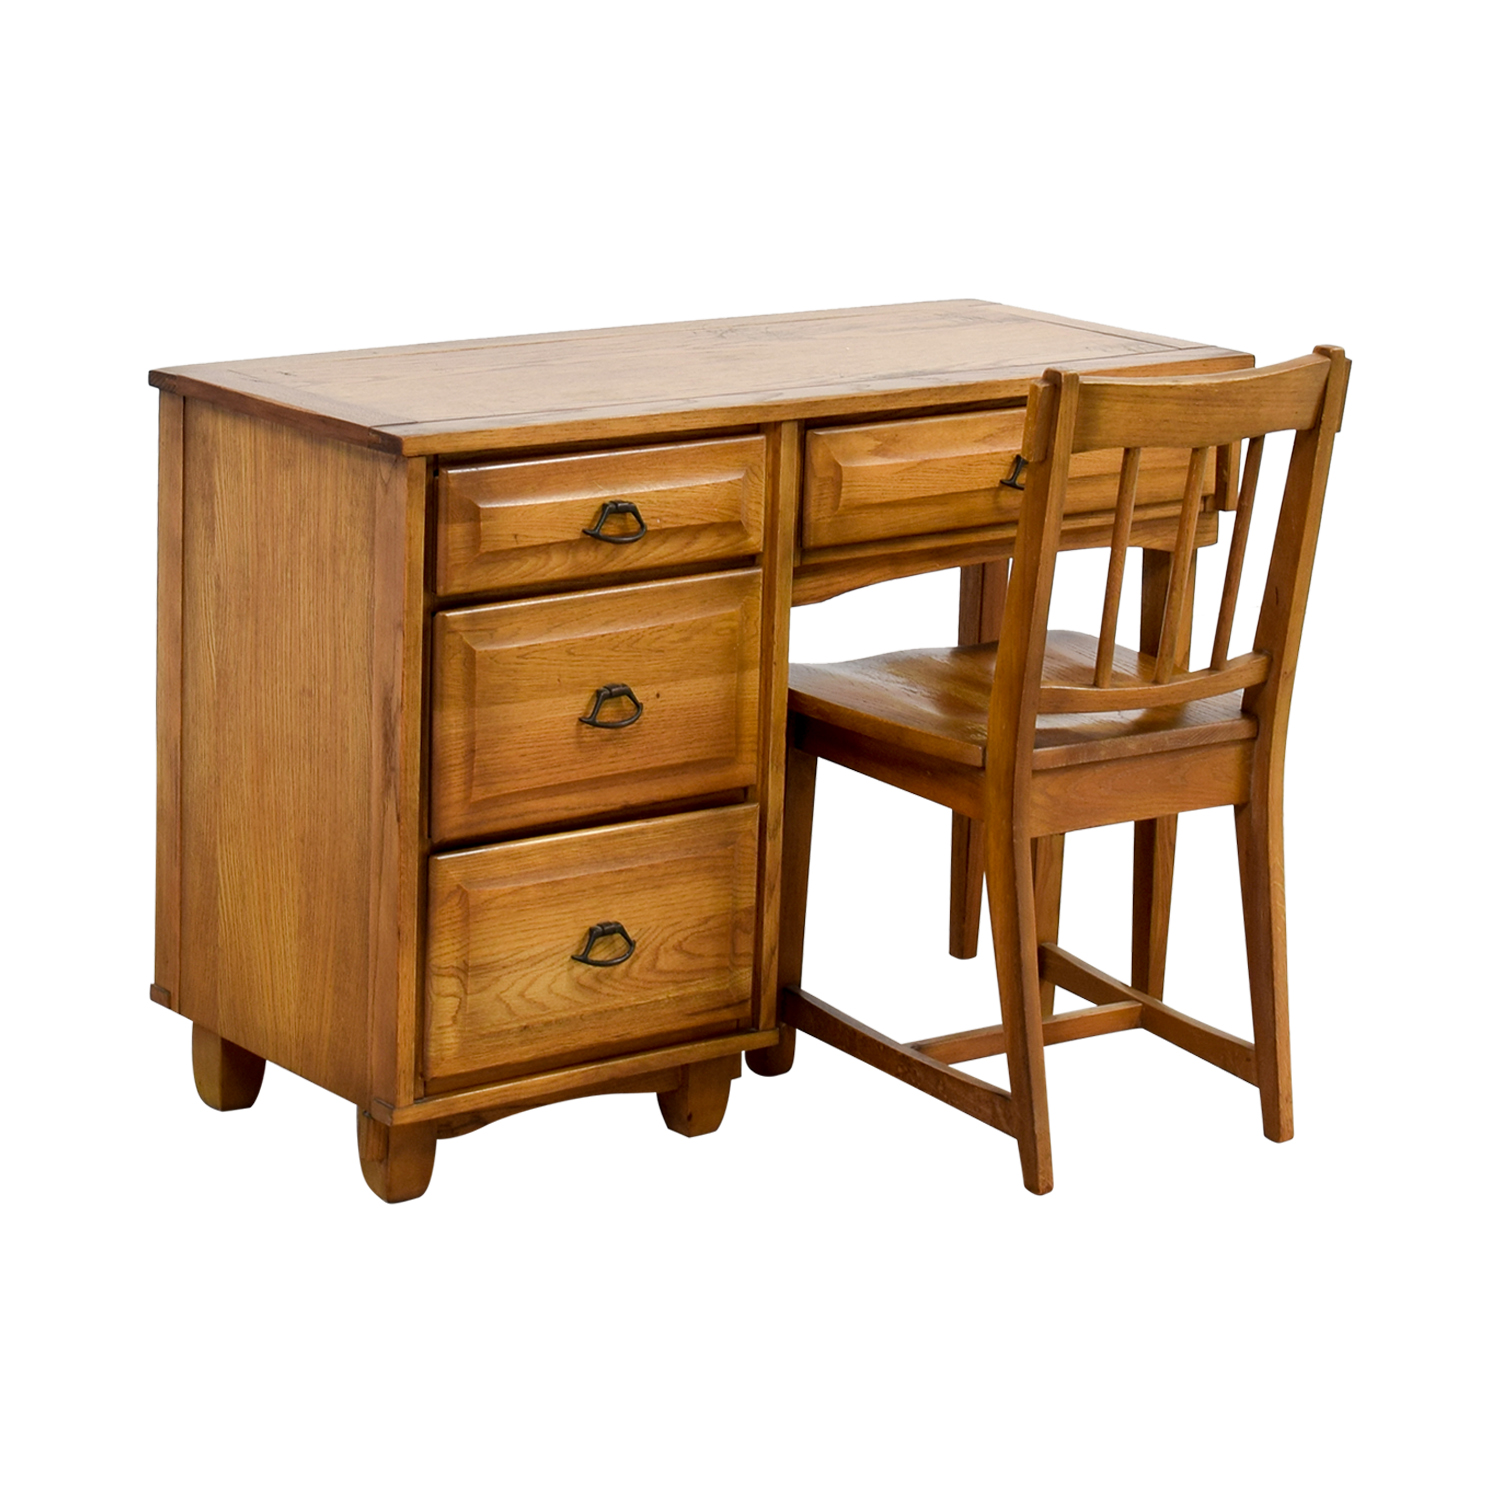 Vintage Mid Century Oak Desk with Chair on sale